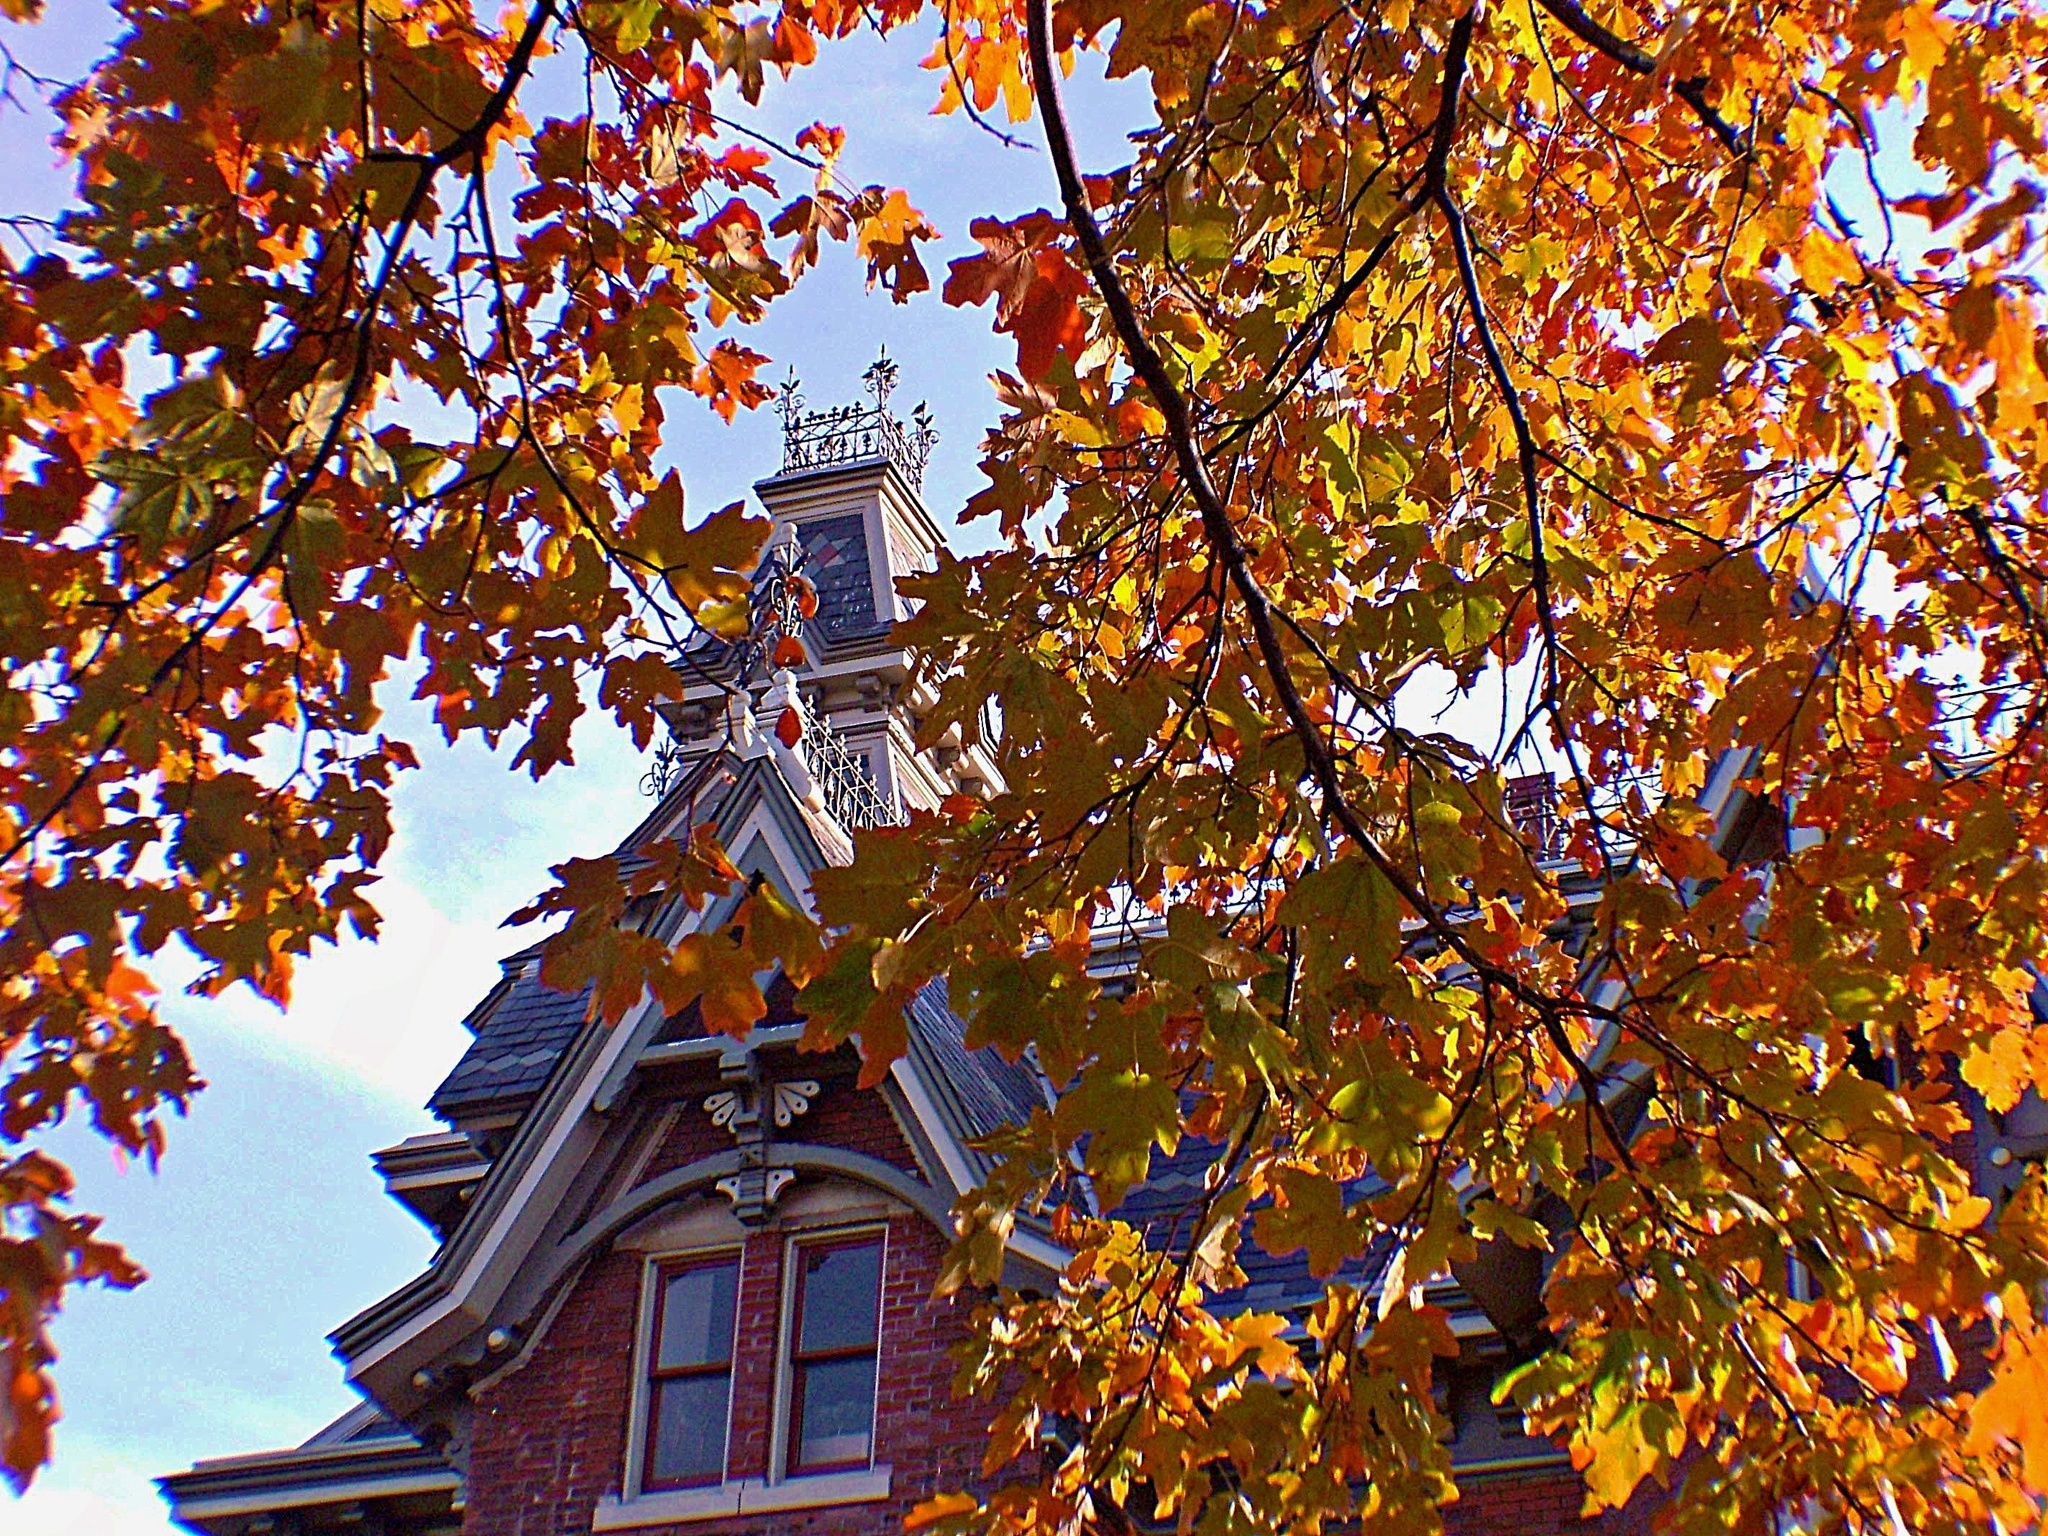 Vaile Victorian Mansion Incased In Fall Foliage  by Lorenzo (Larry) Jonree